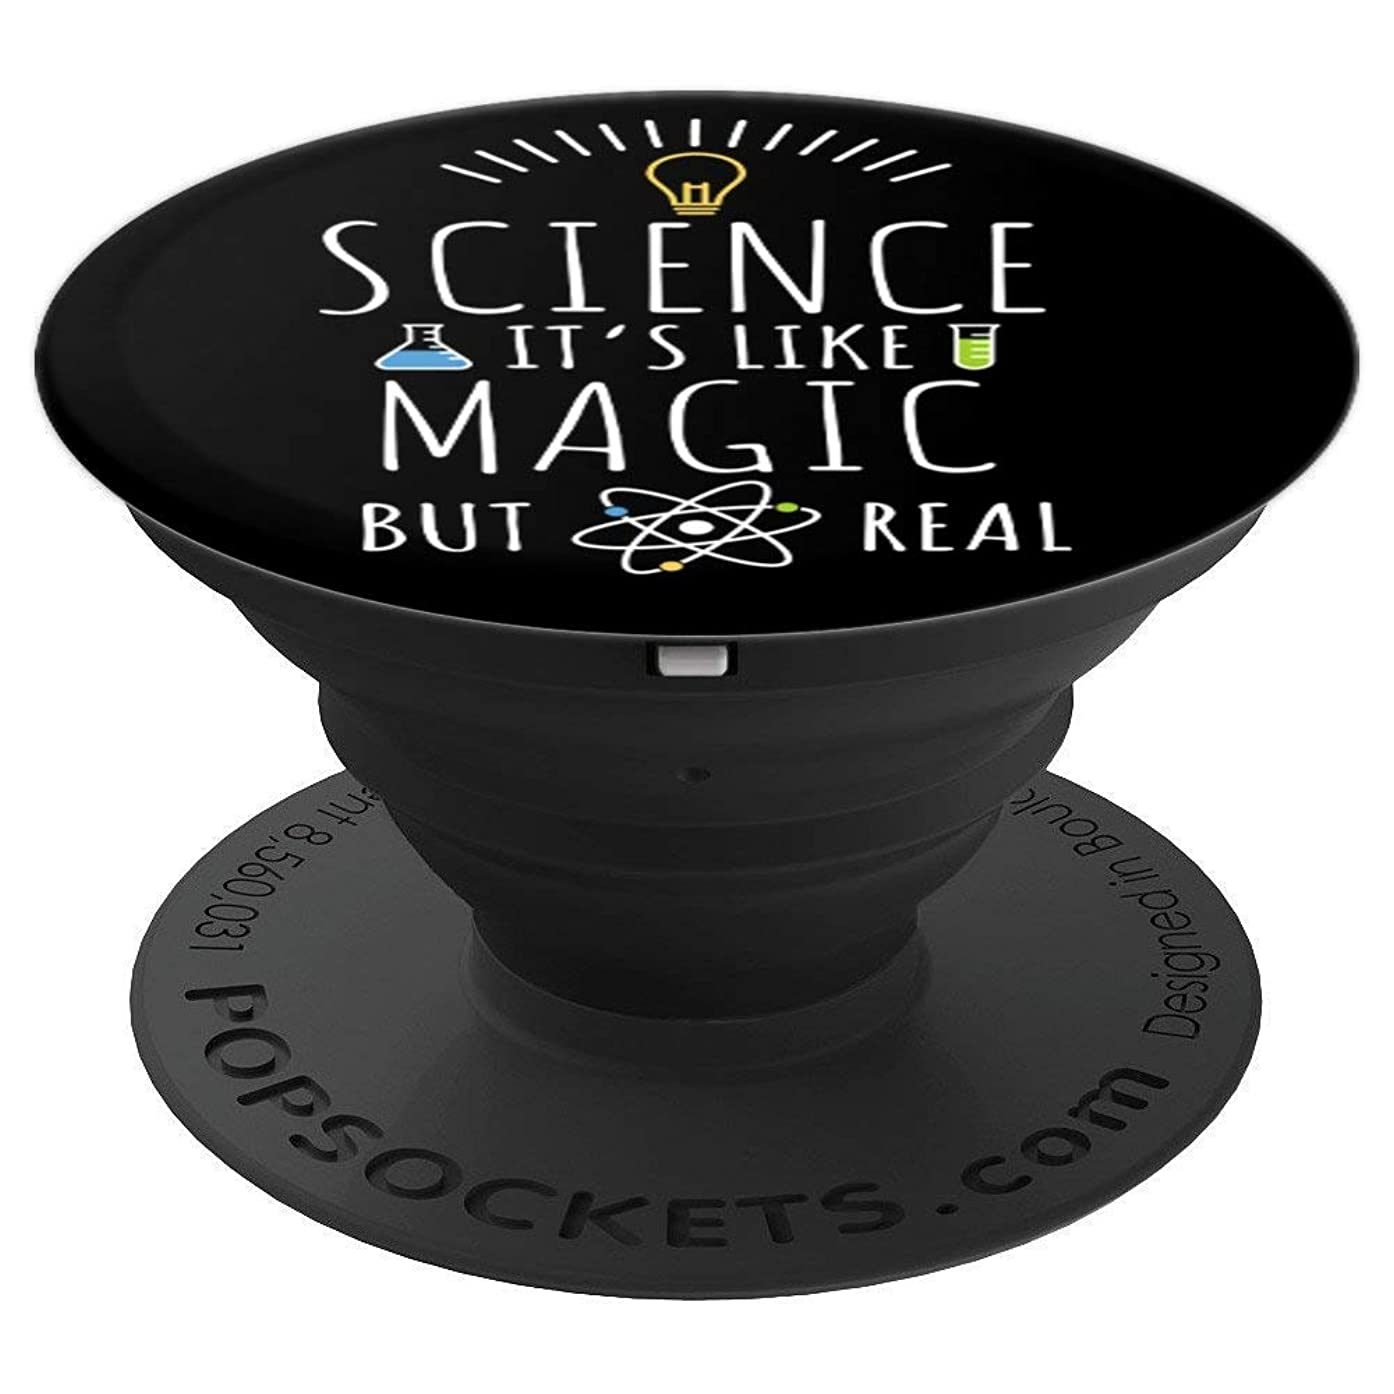 Science It's Like Magic But Real - PopSockets Grip and Stand for Phones and Tablets